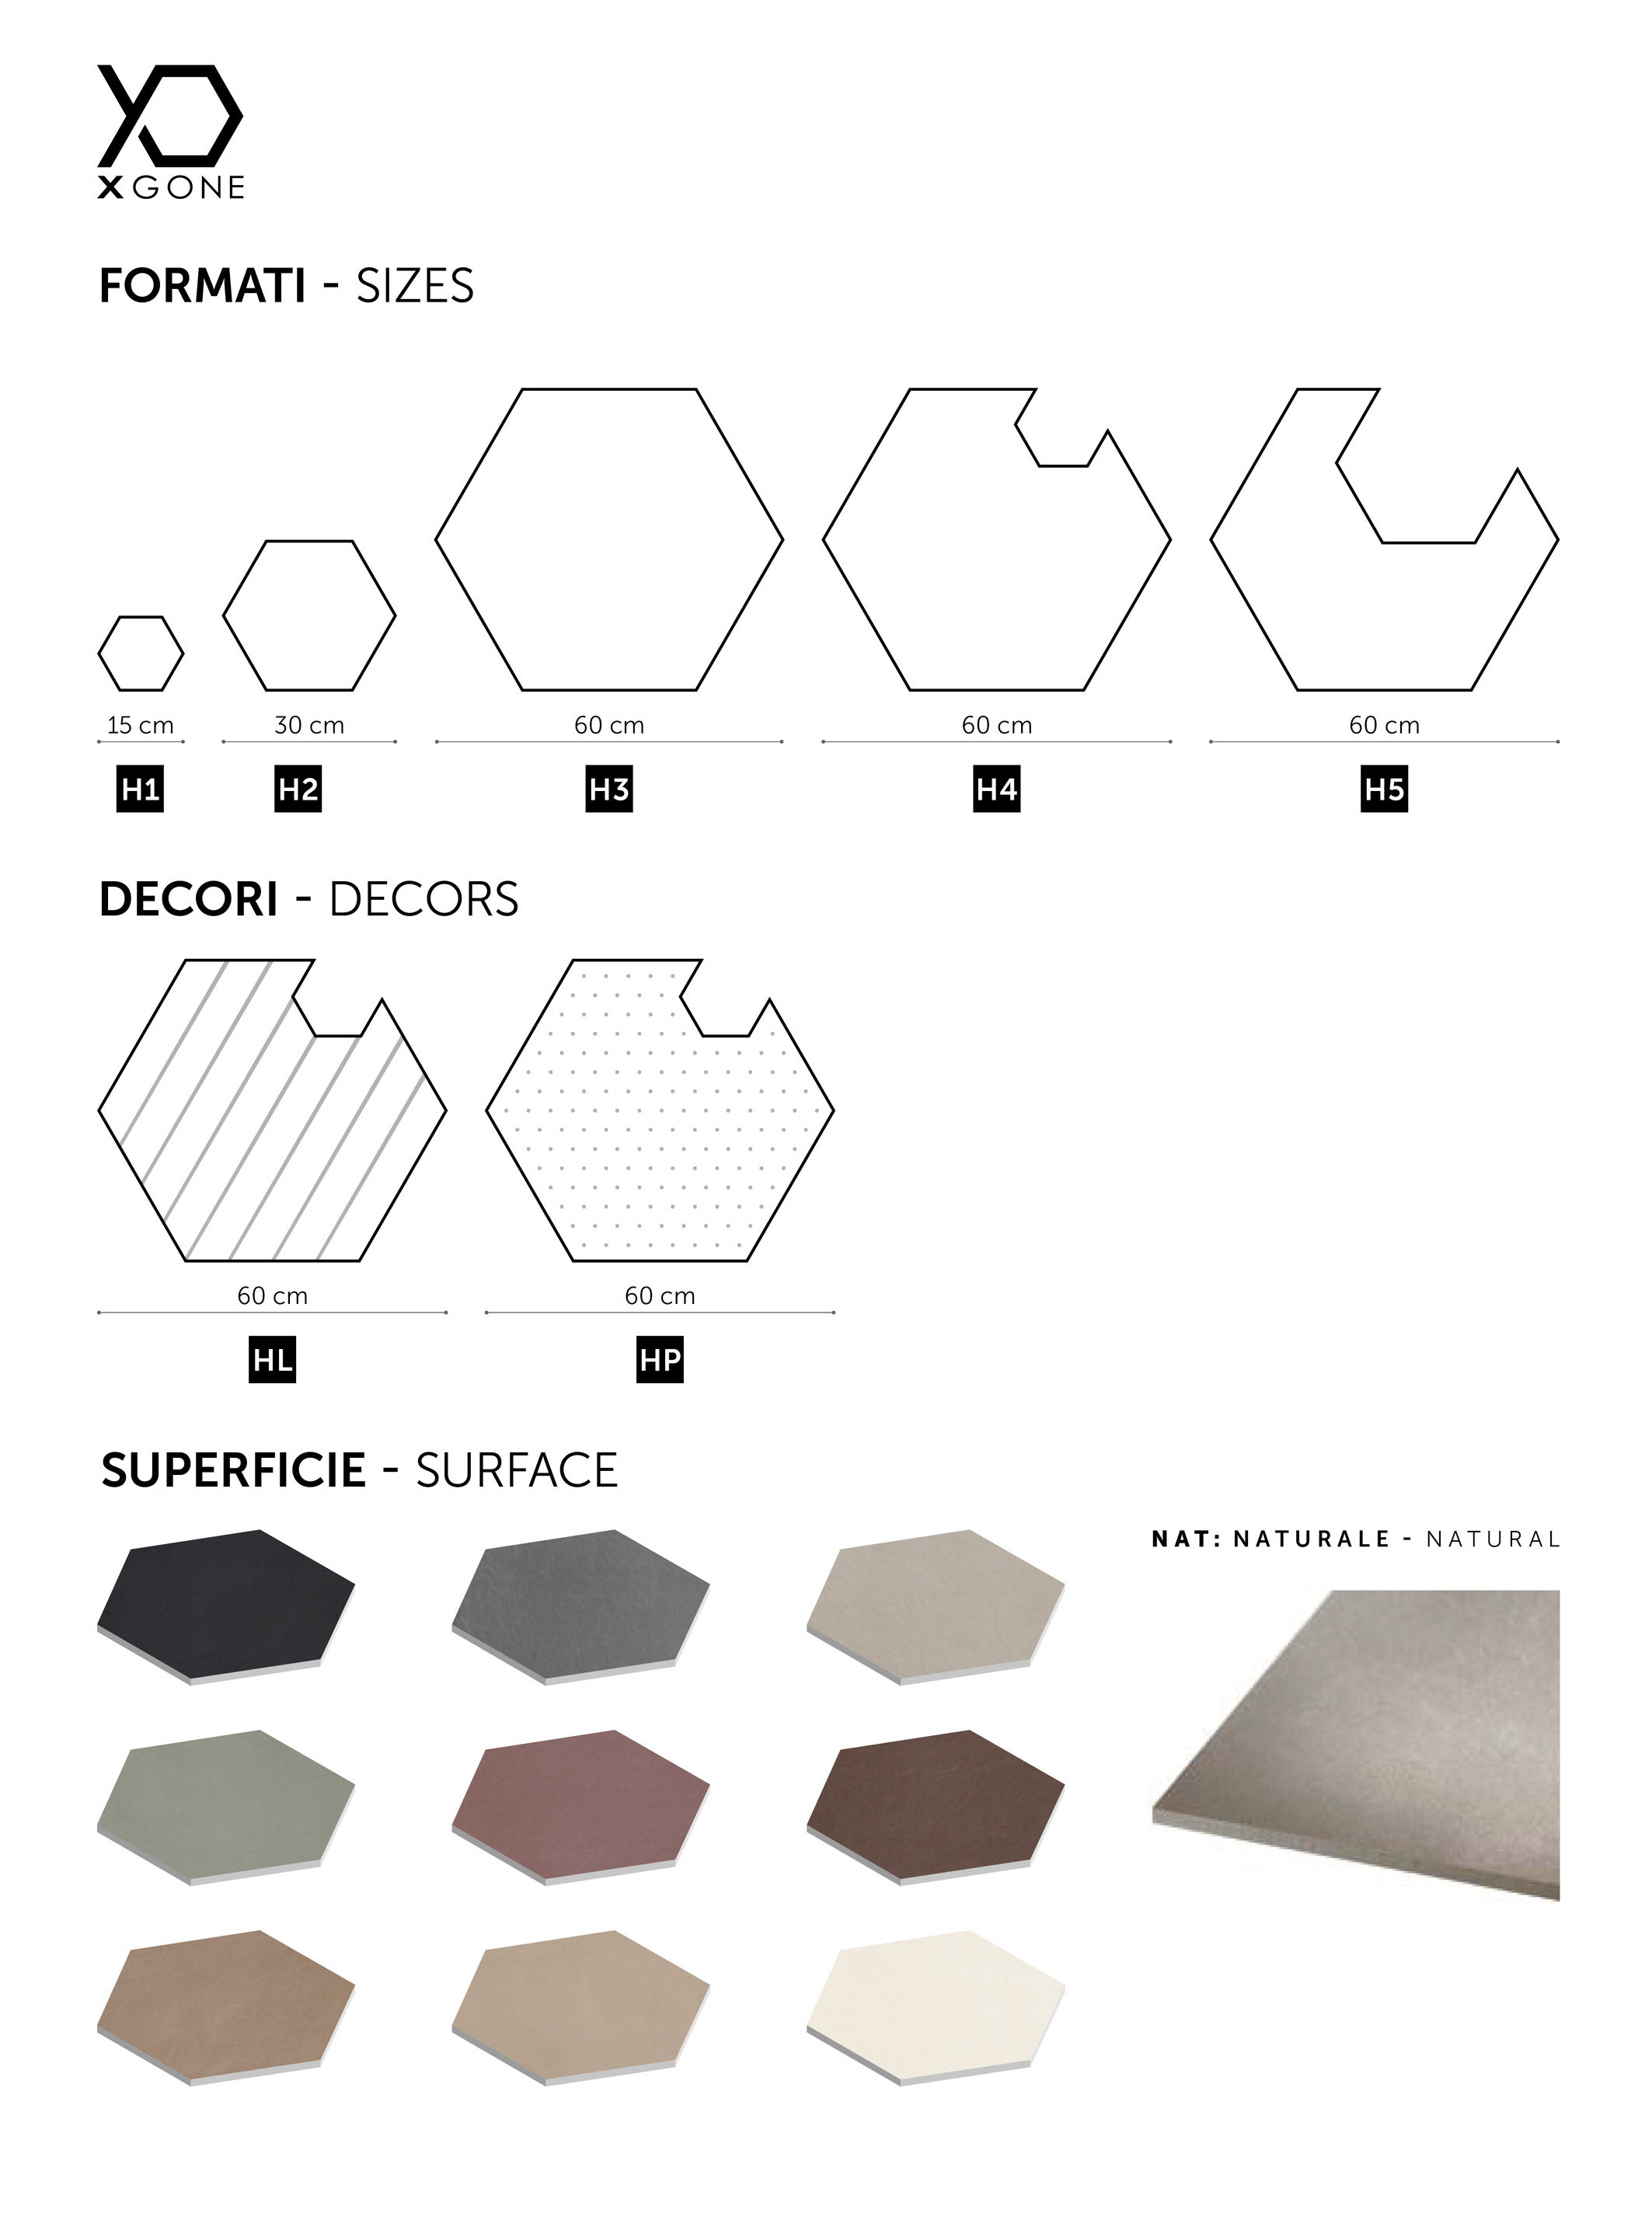 Xgone, adi design index, 2015, design, deferrari modesti, mirage